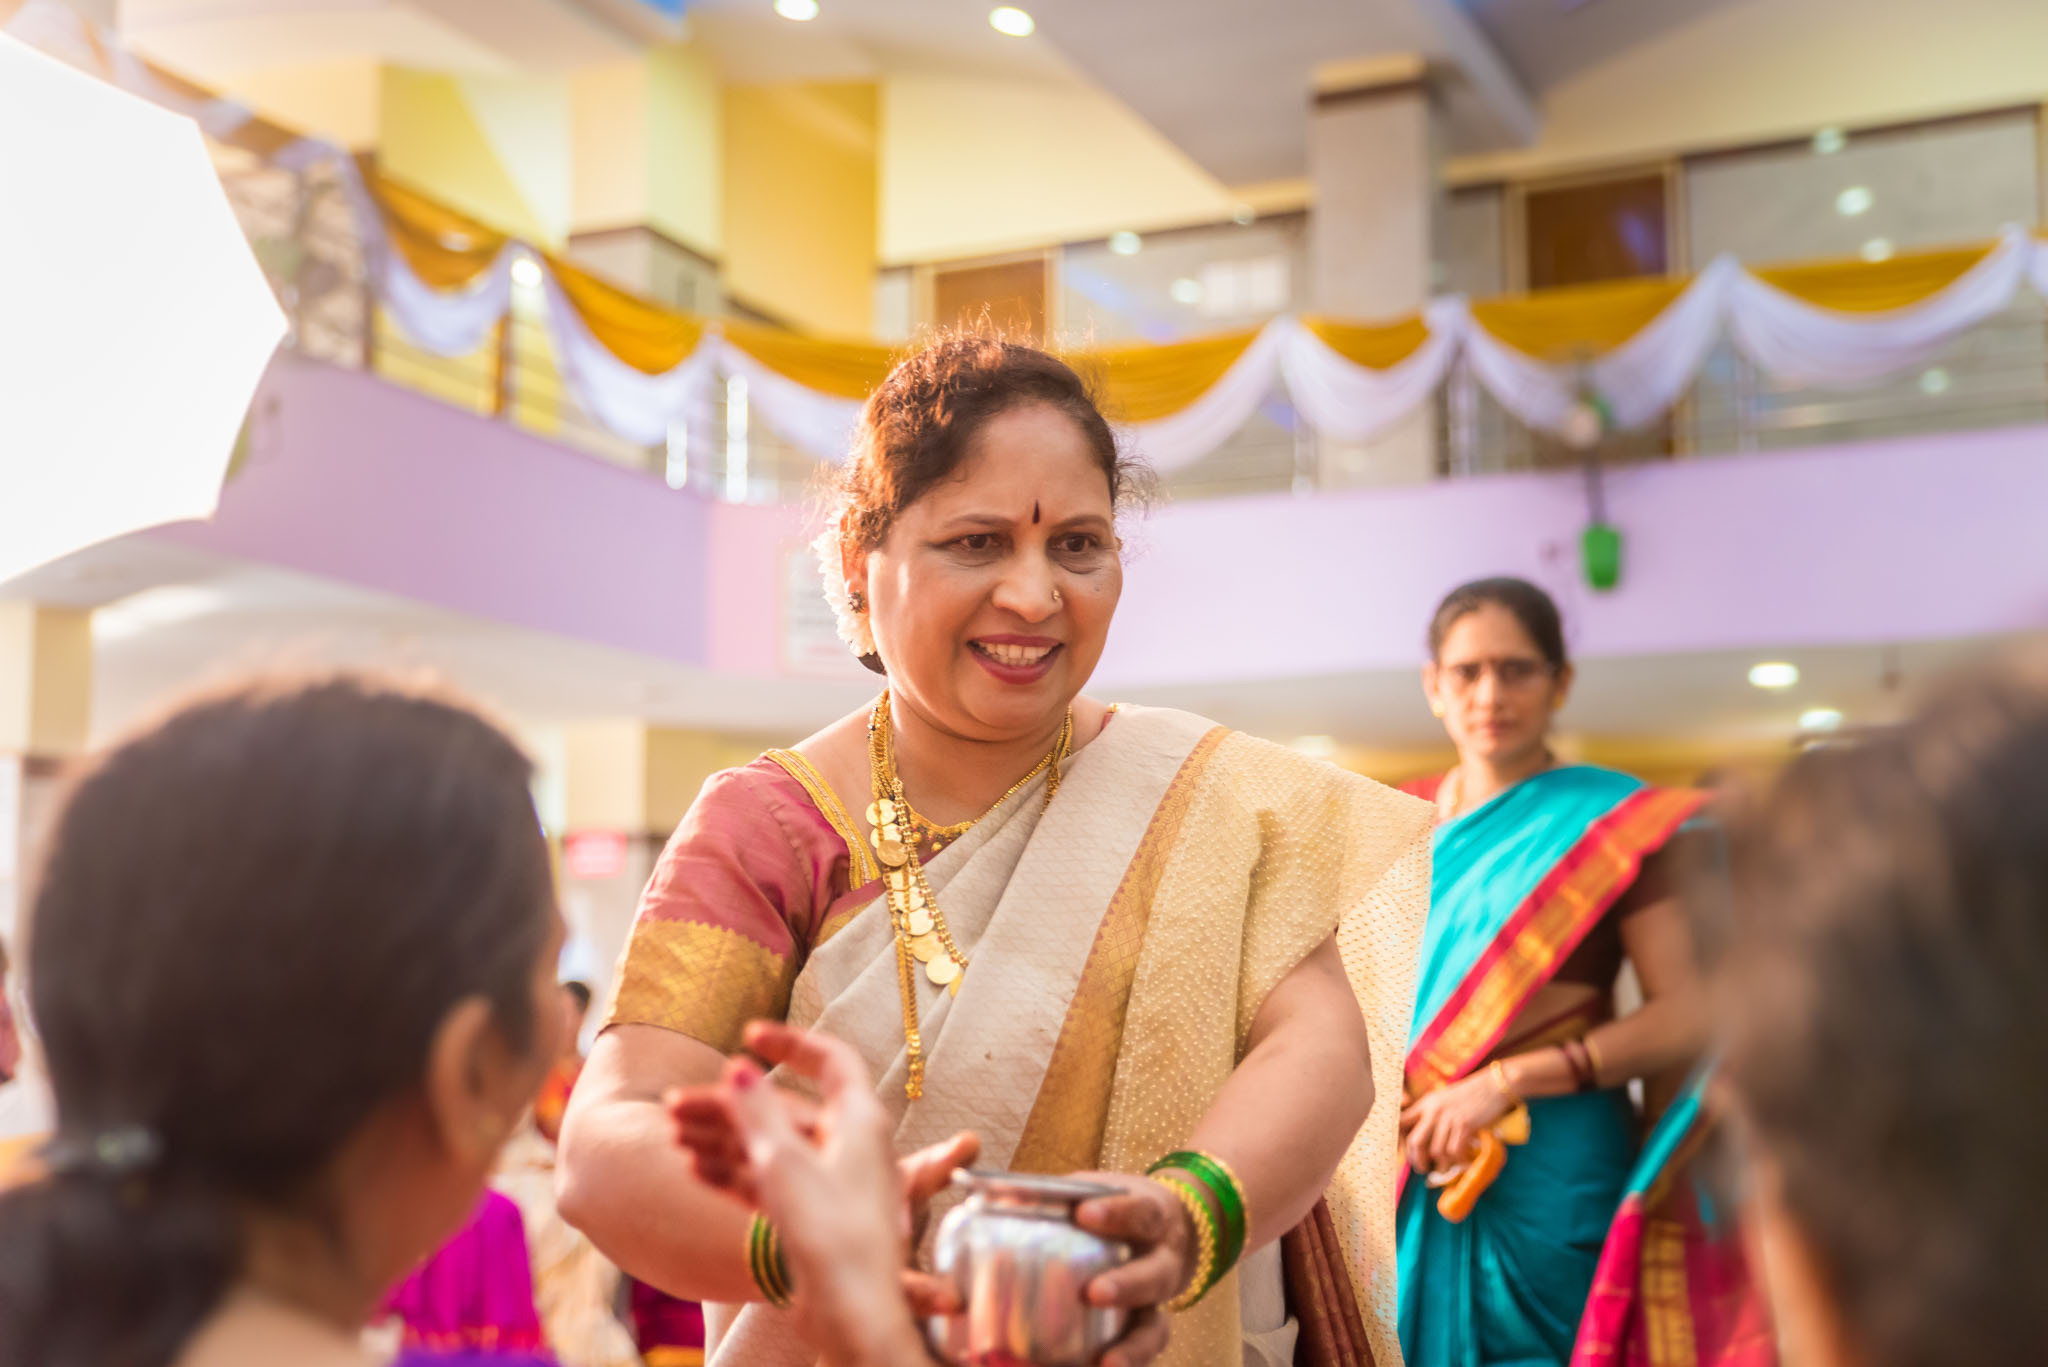 WhatKnot-Candid-Wedding-Photography-Mumbai-Bangalore-143